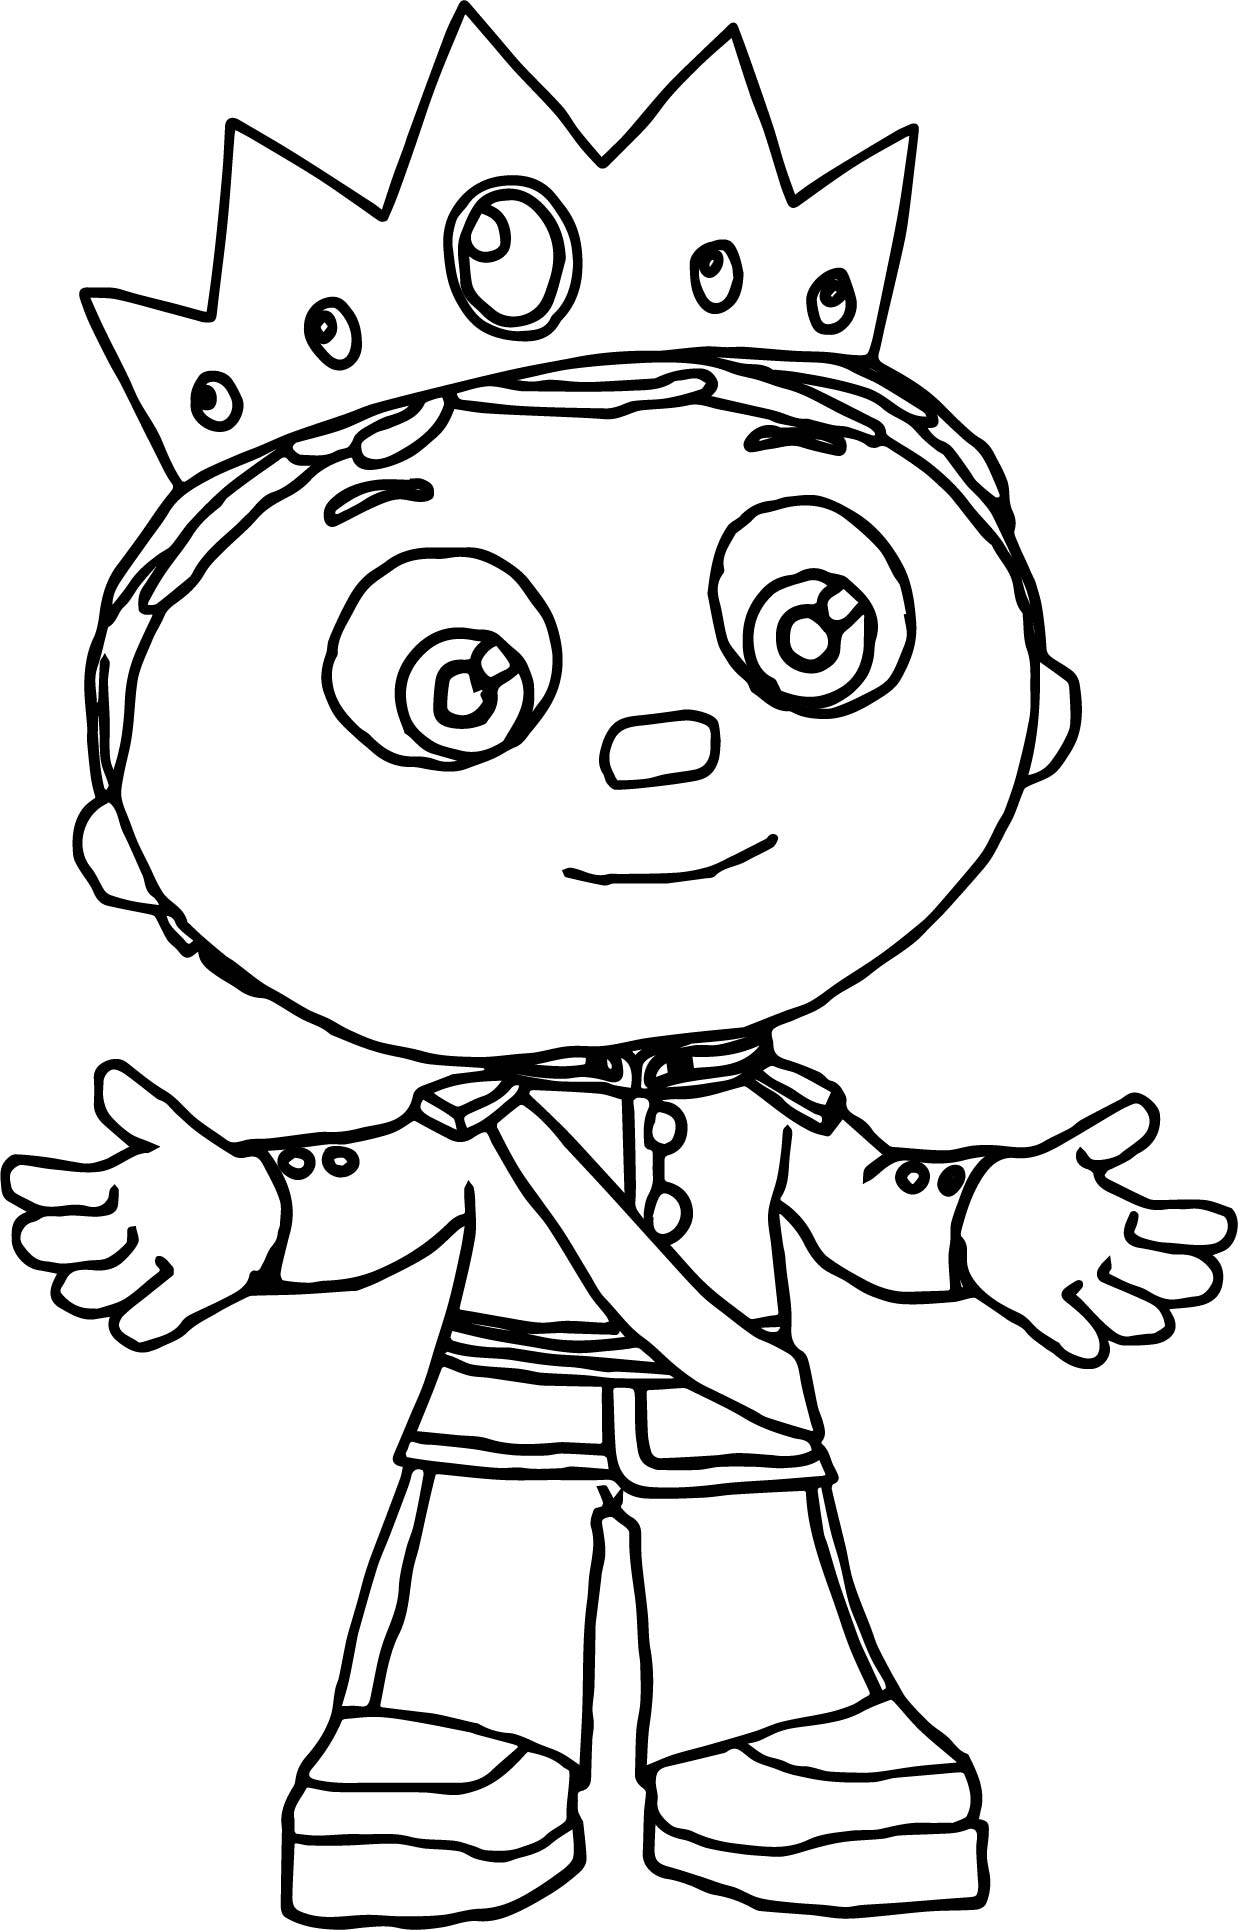 free pictures coloring pages - photo#10